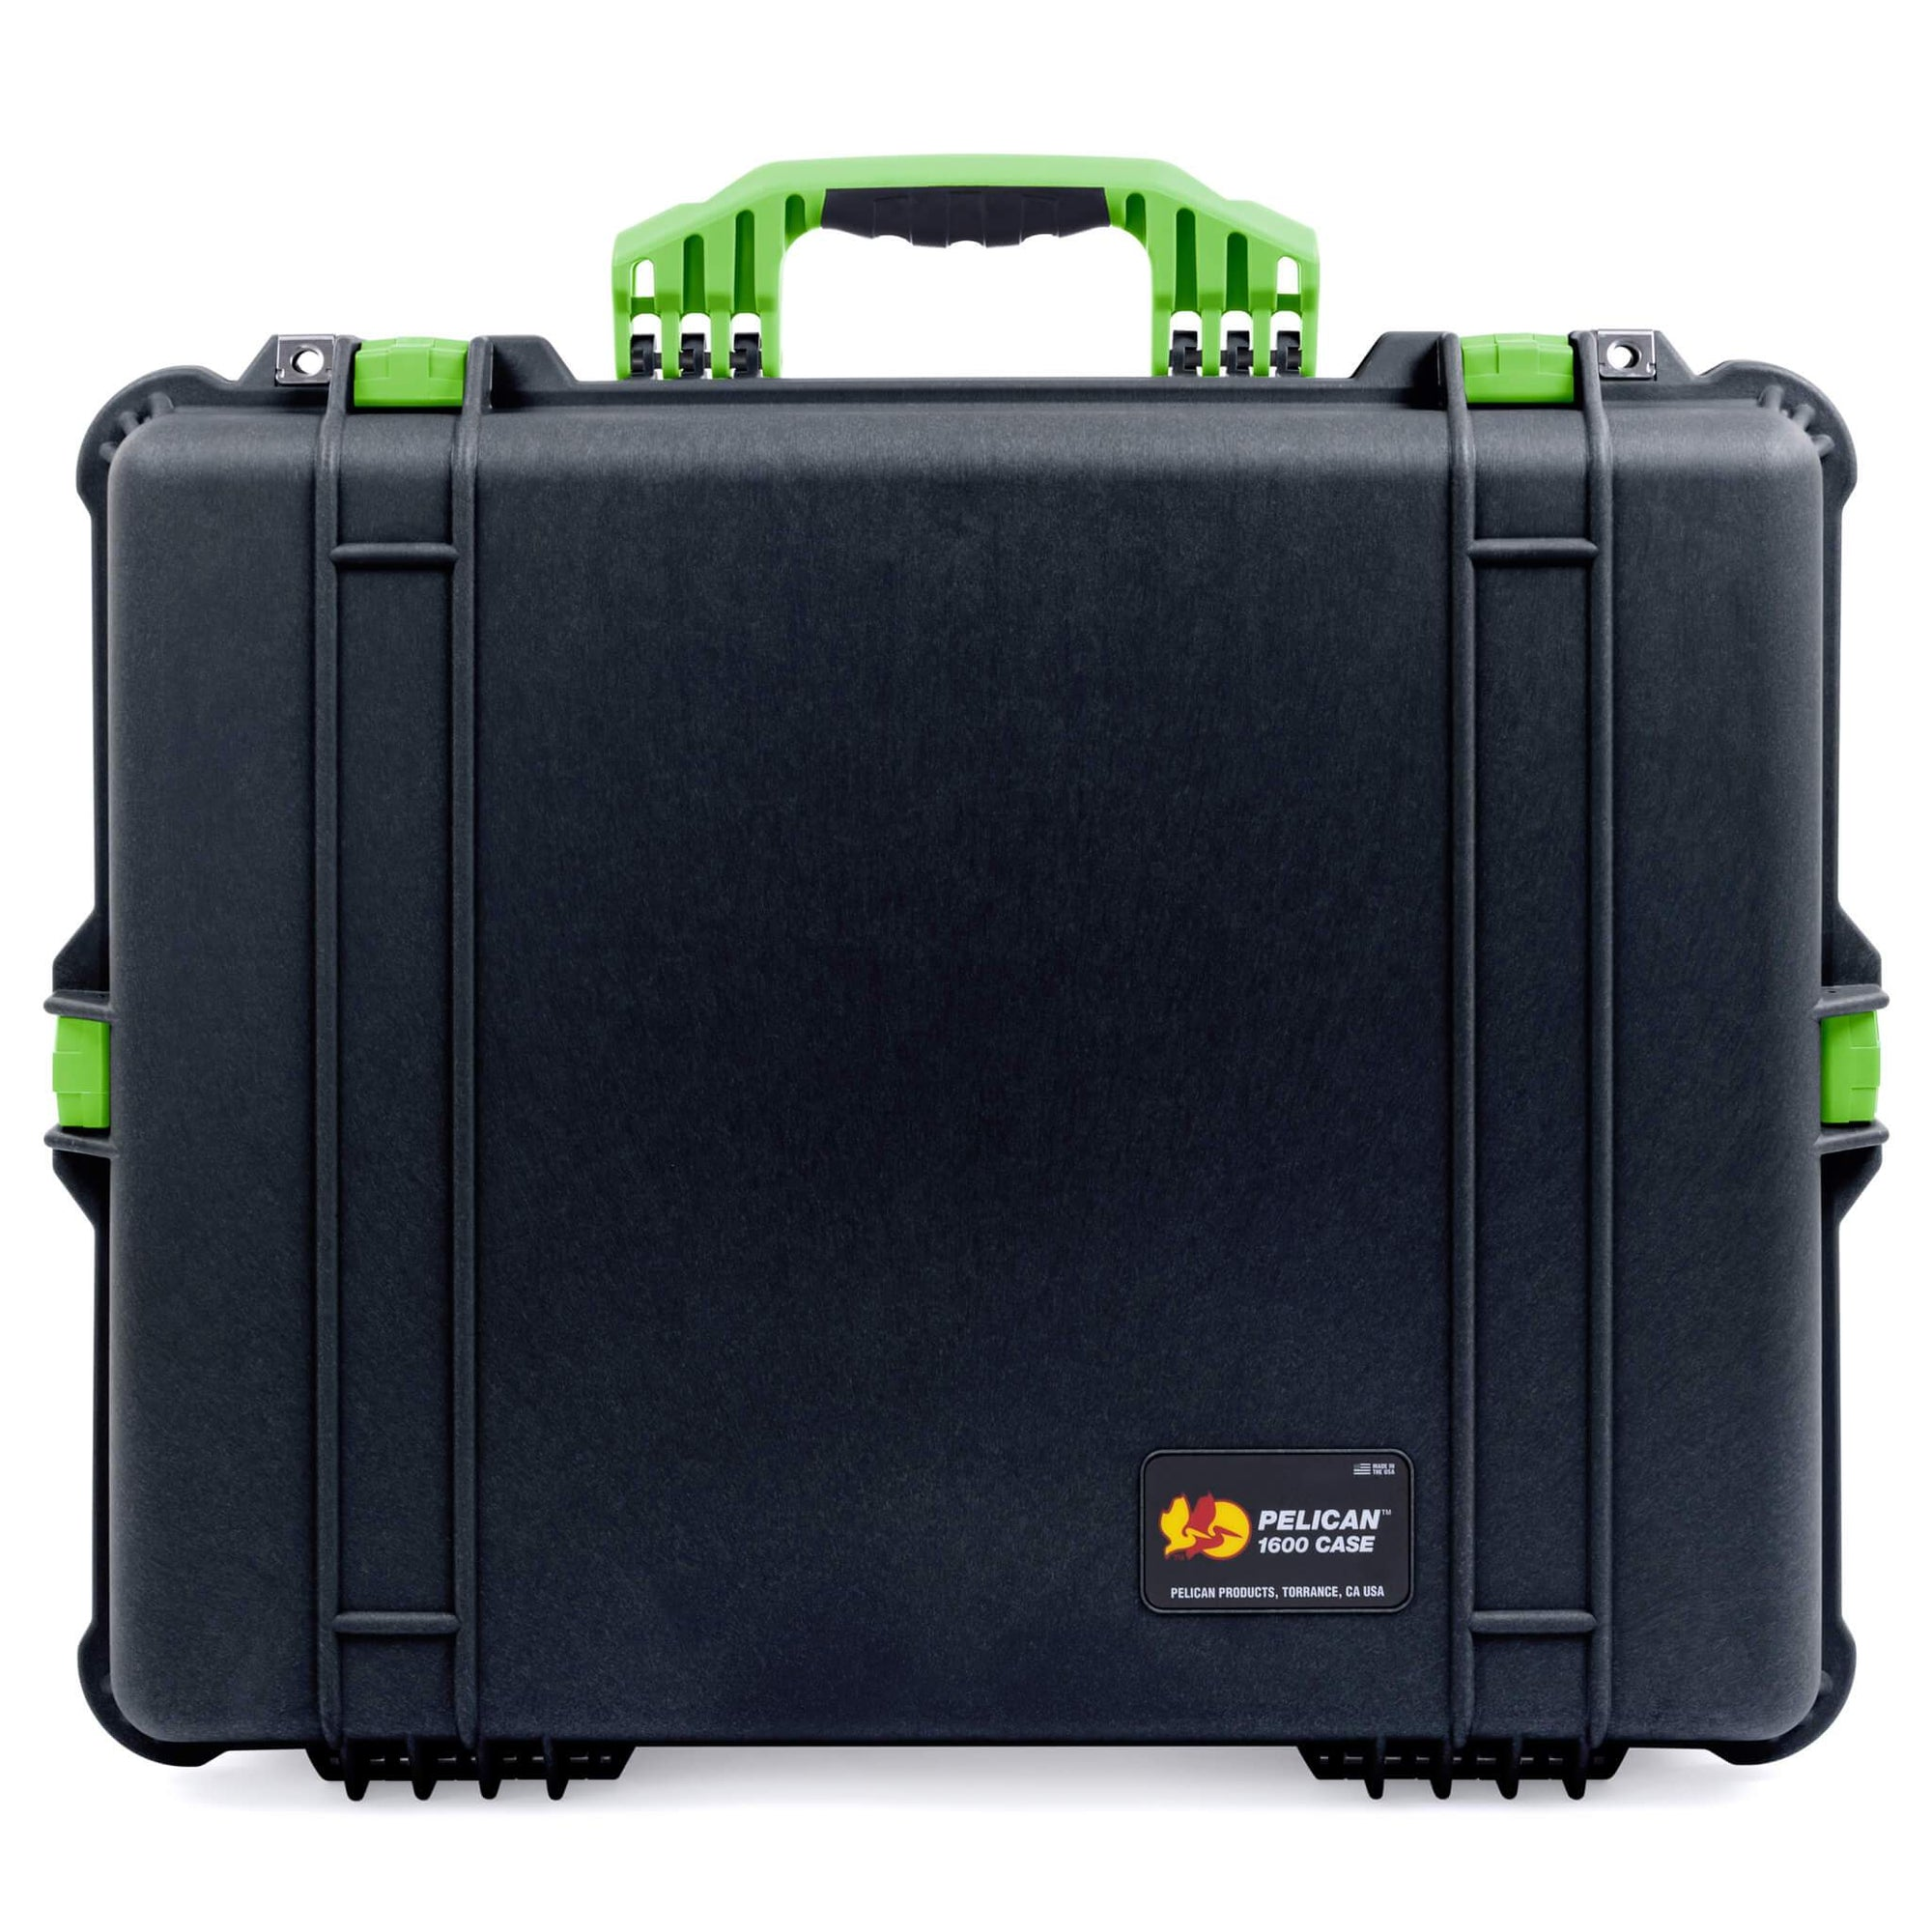 Pelican 1600 Case, Black with Lime Green Handle & Latches